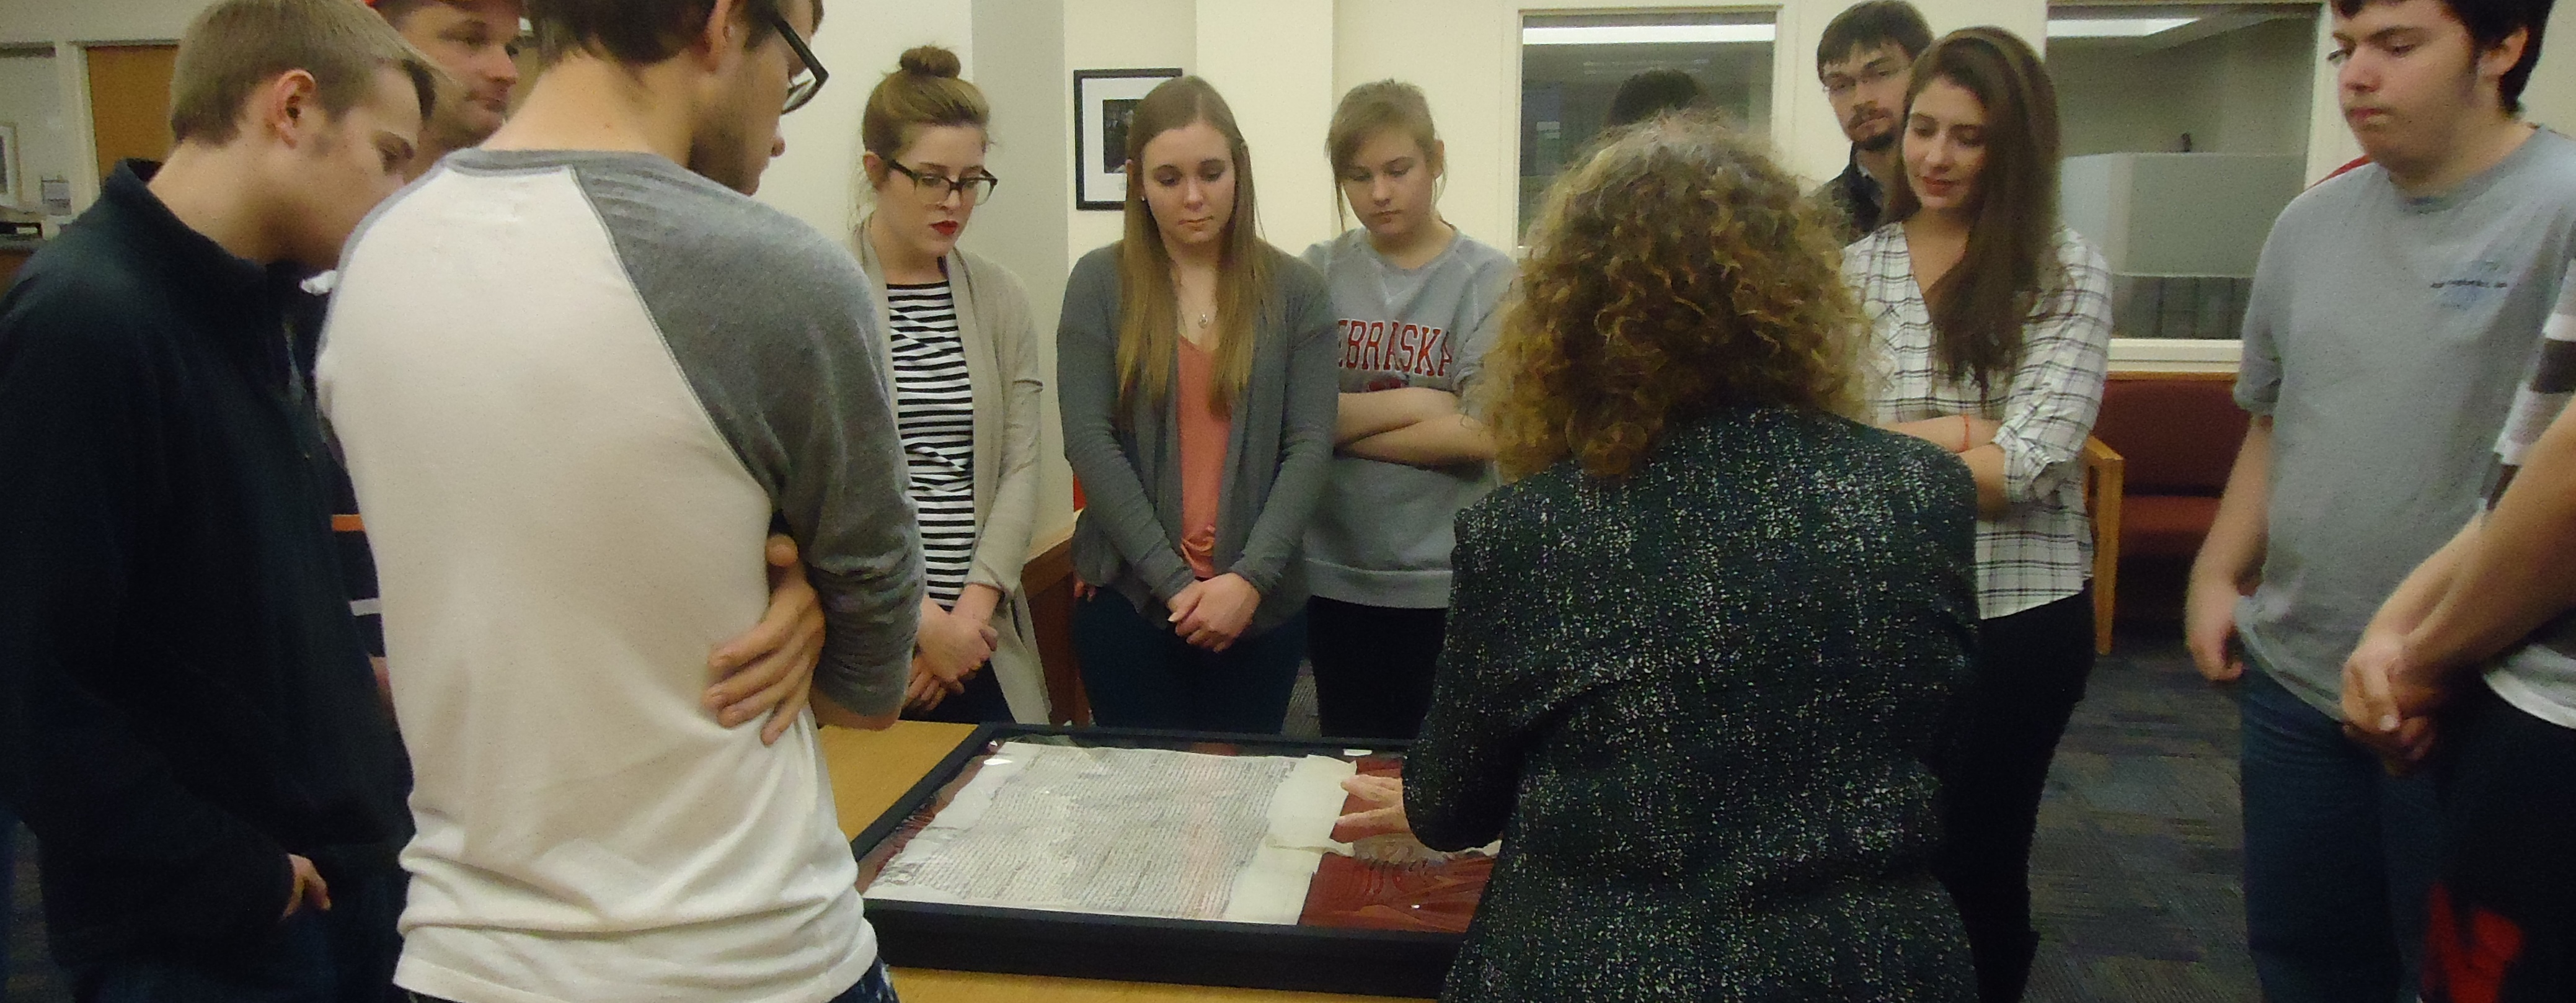 HIST 231 students listen to Dr. Levin describe a land deed with Queen Elizabeth I's pre-1575 seal